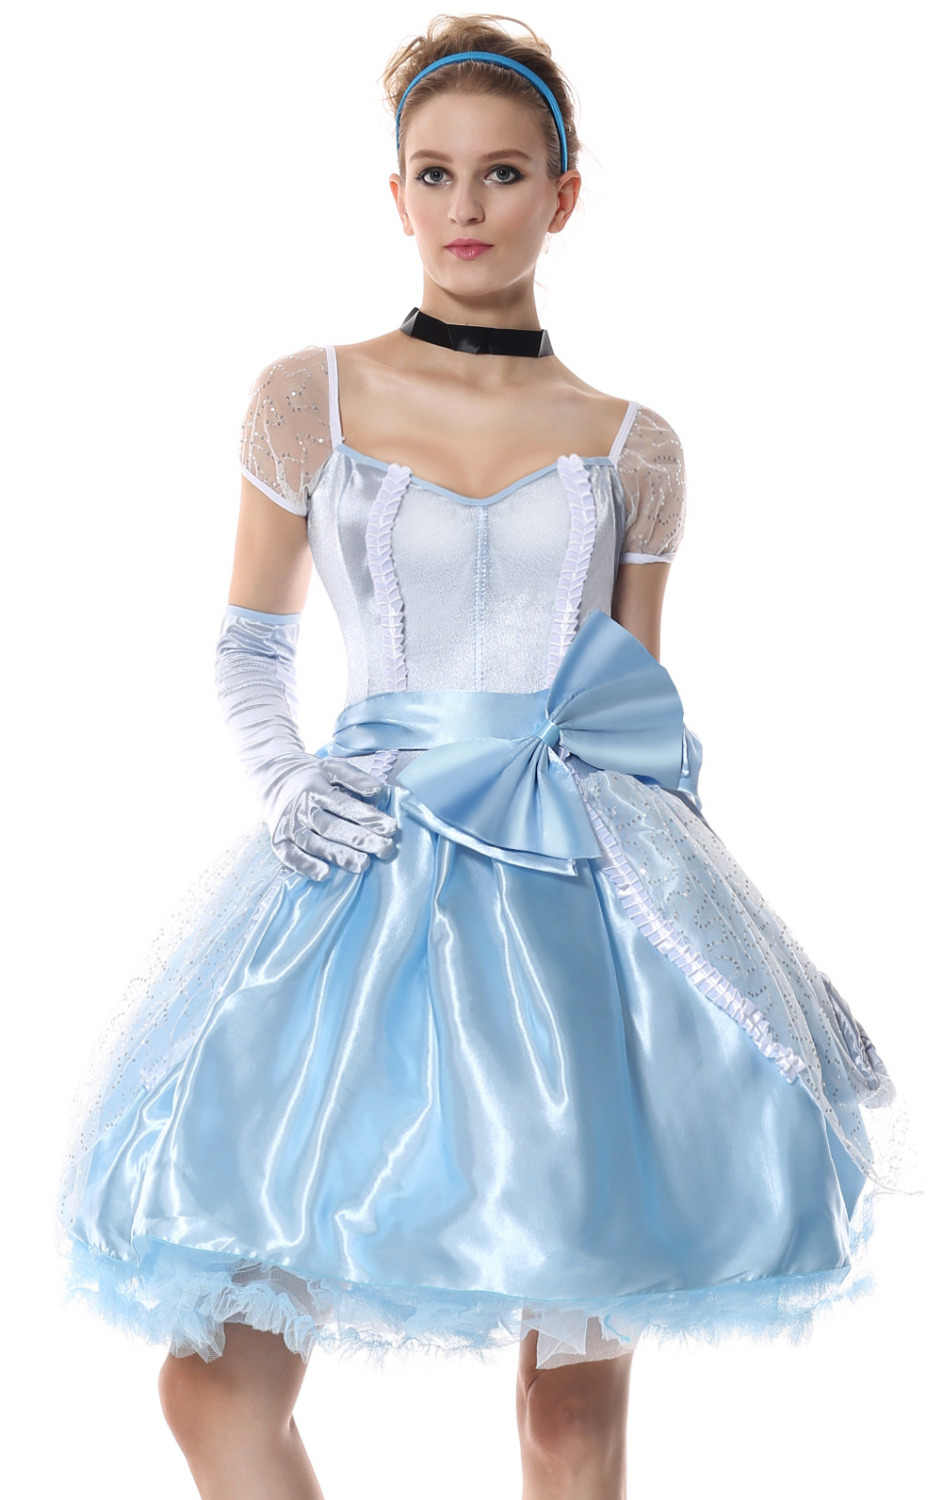 e82b14635a76f Halloween Adult Women Princess Cinderella Fancy Dress Costume Fairy Tale Princess  Costumes Plus Size M-